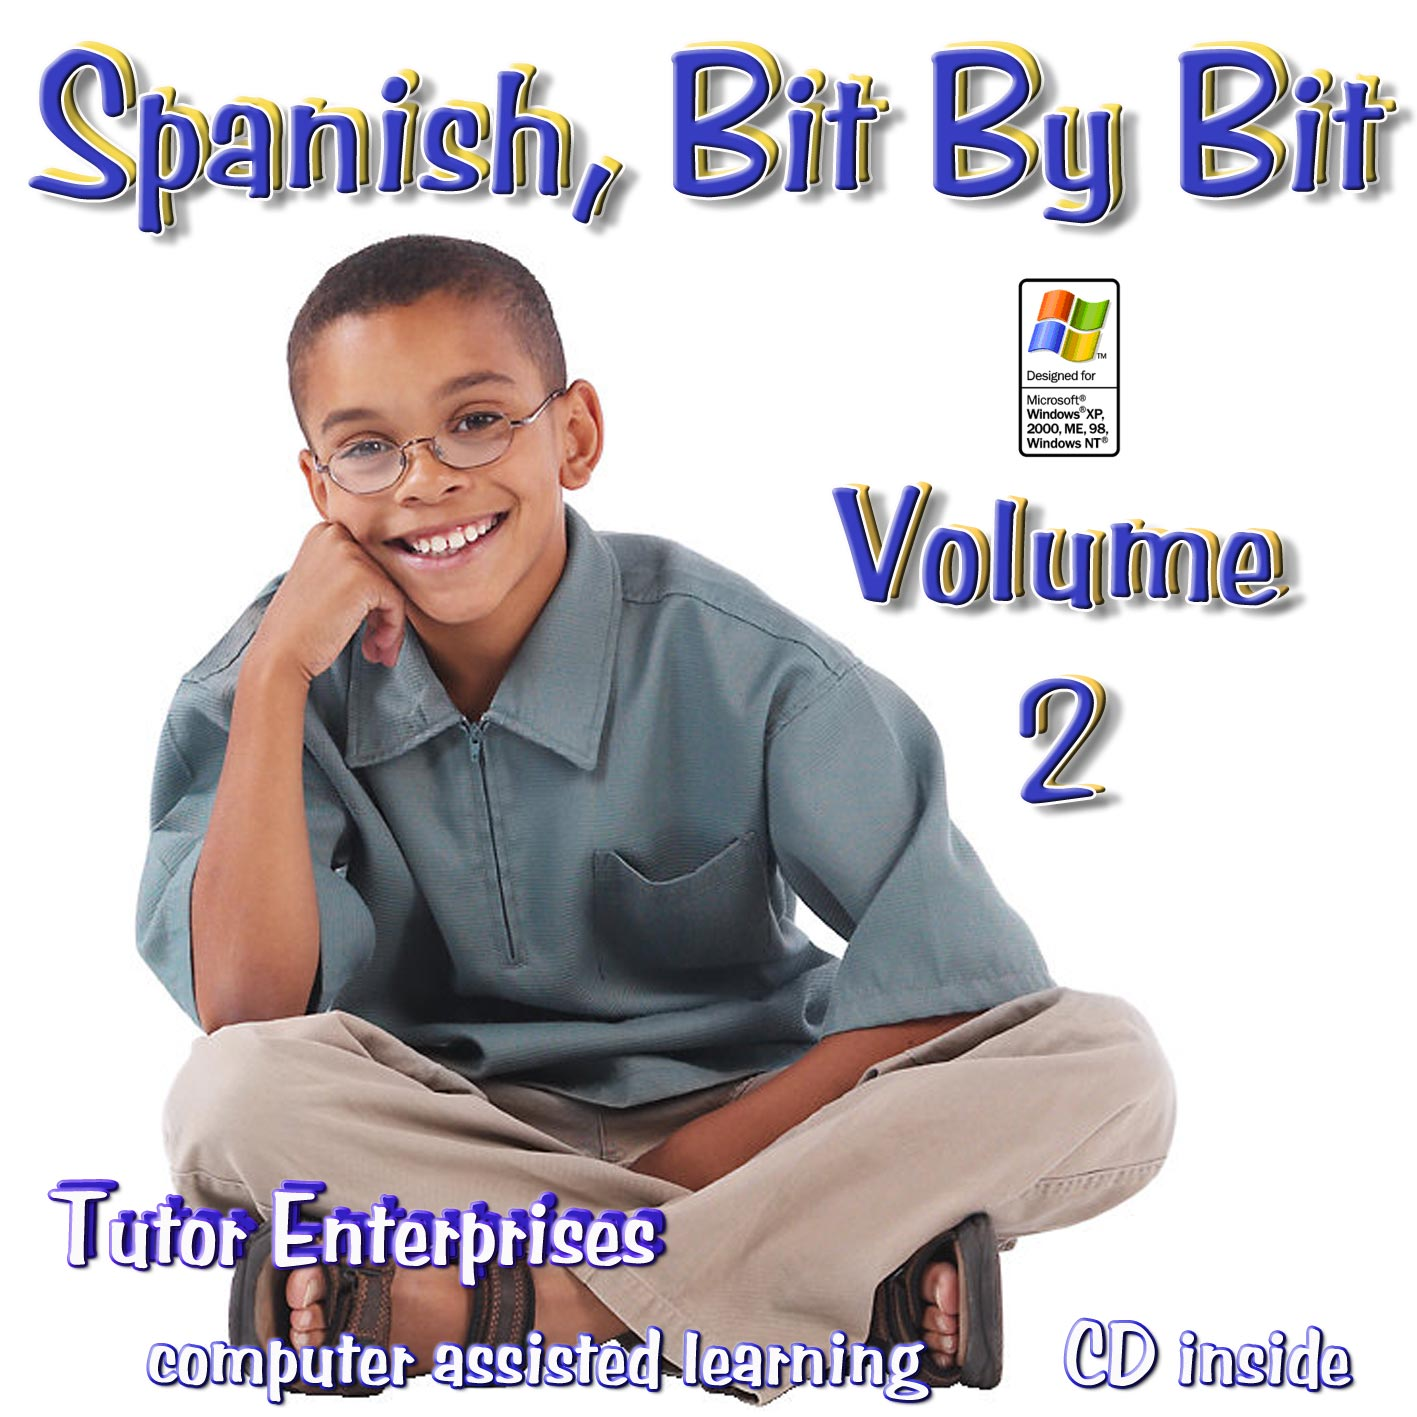 Software for learning Spanish Vol 2 beginner middle/high school to adult  with lessons,